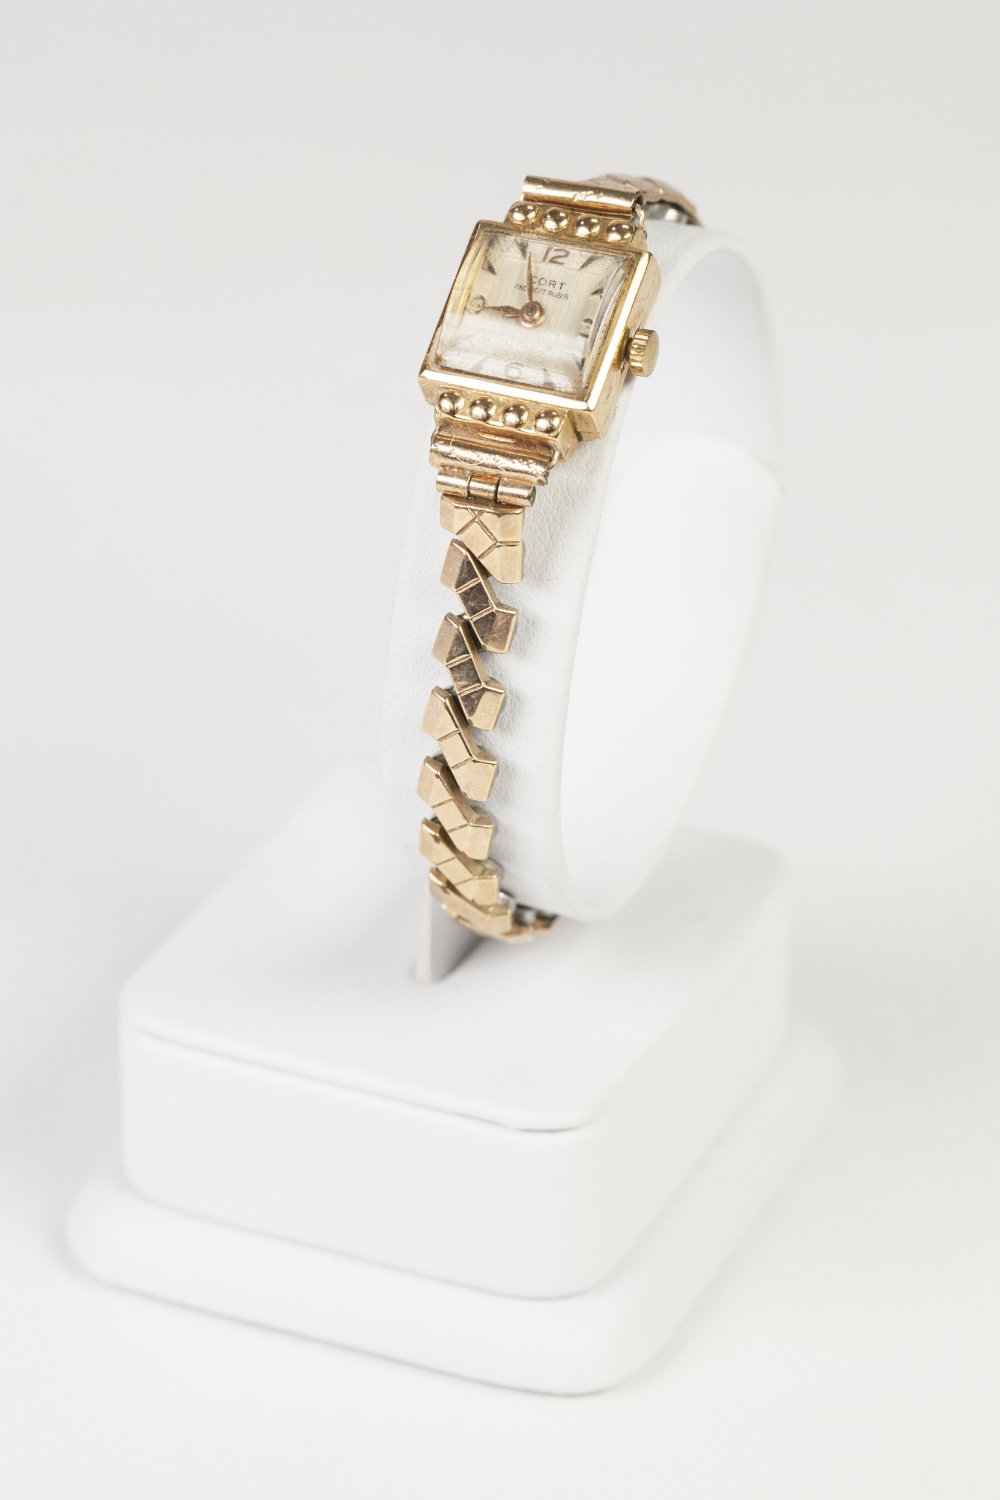 Lot 9 - LADY'S CORT 18ct GOLD CASED SMALL WRIST WATCH, with 17 jewelled movement, square silvered dial, gold